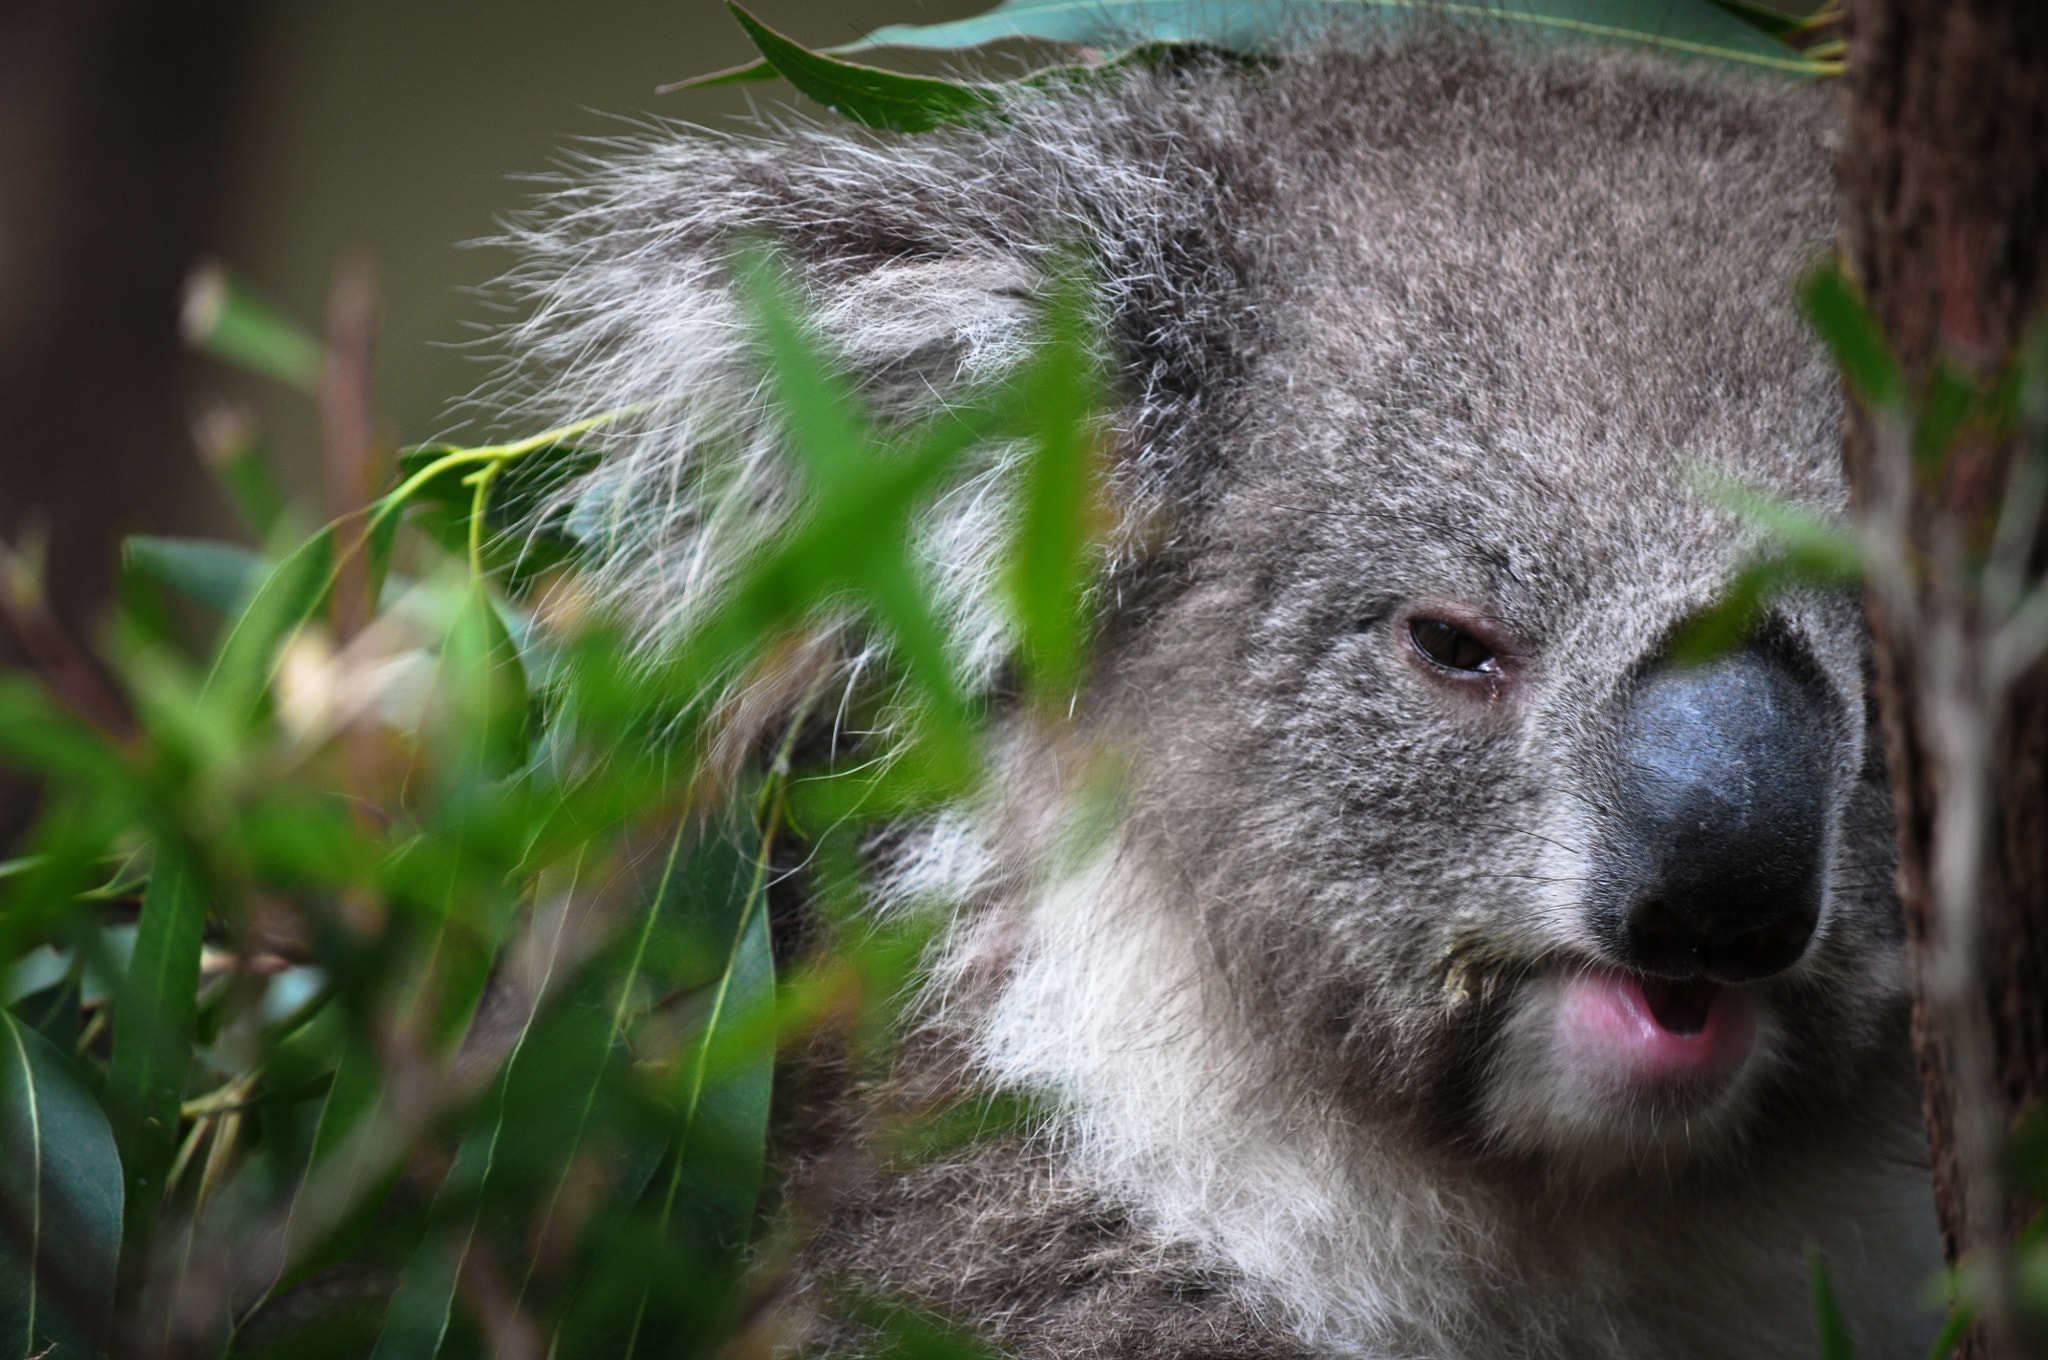 Photograph Koala Close Up by Andrew Sharpe on 500px